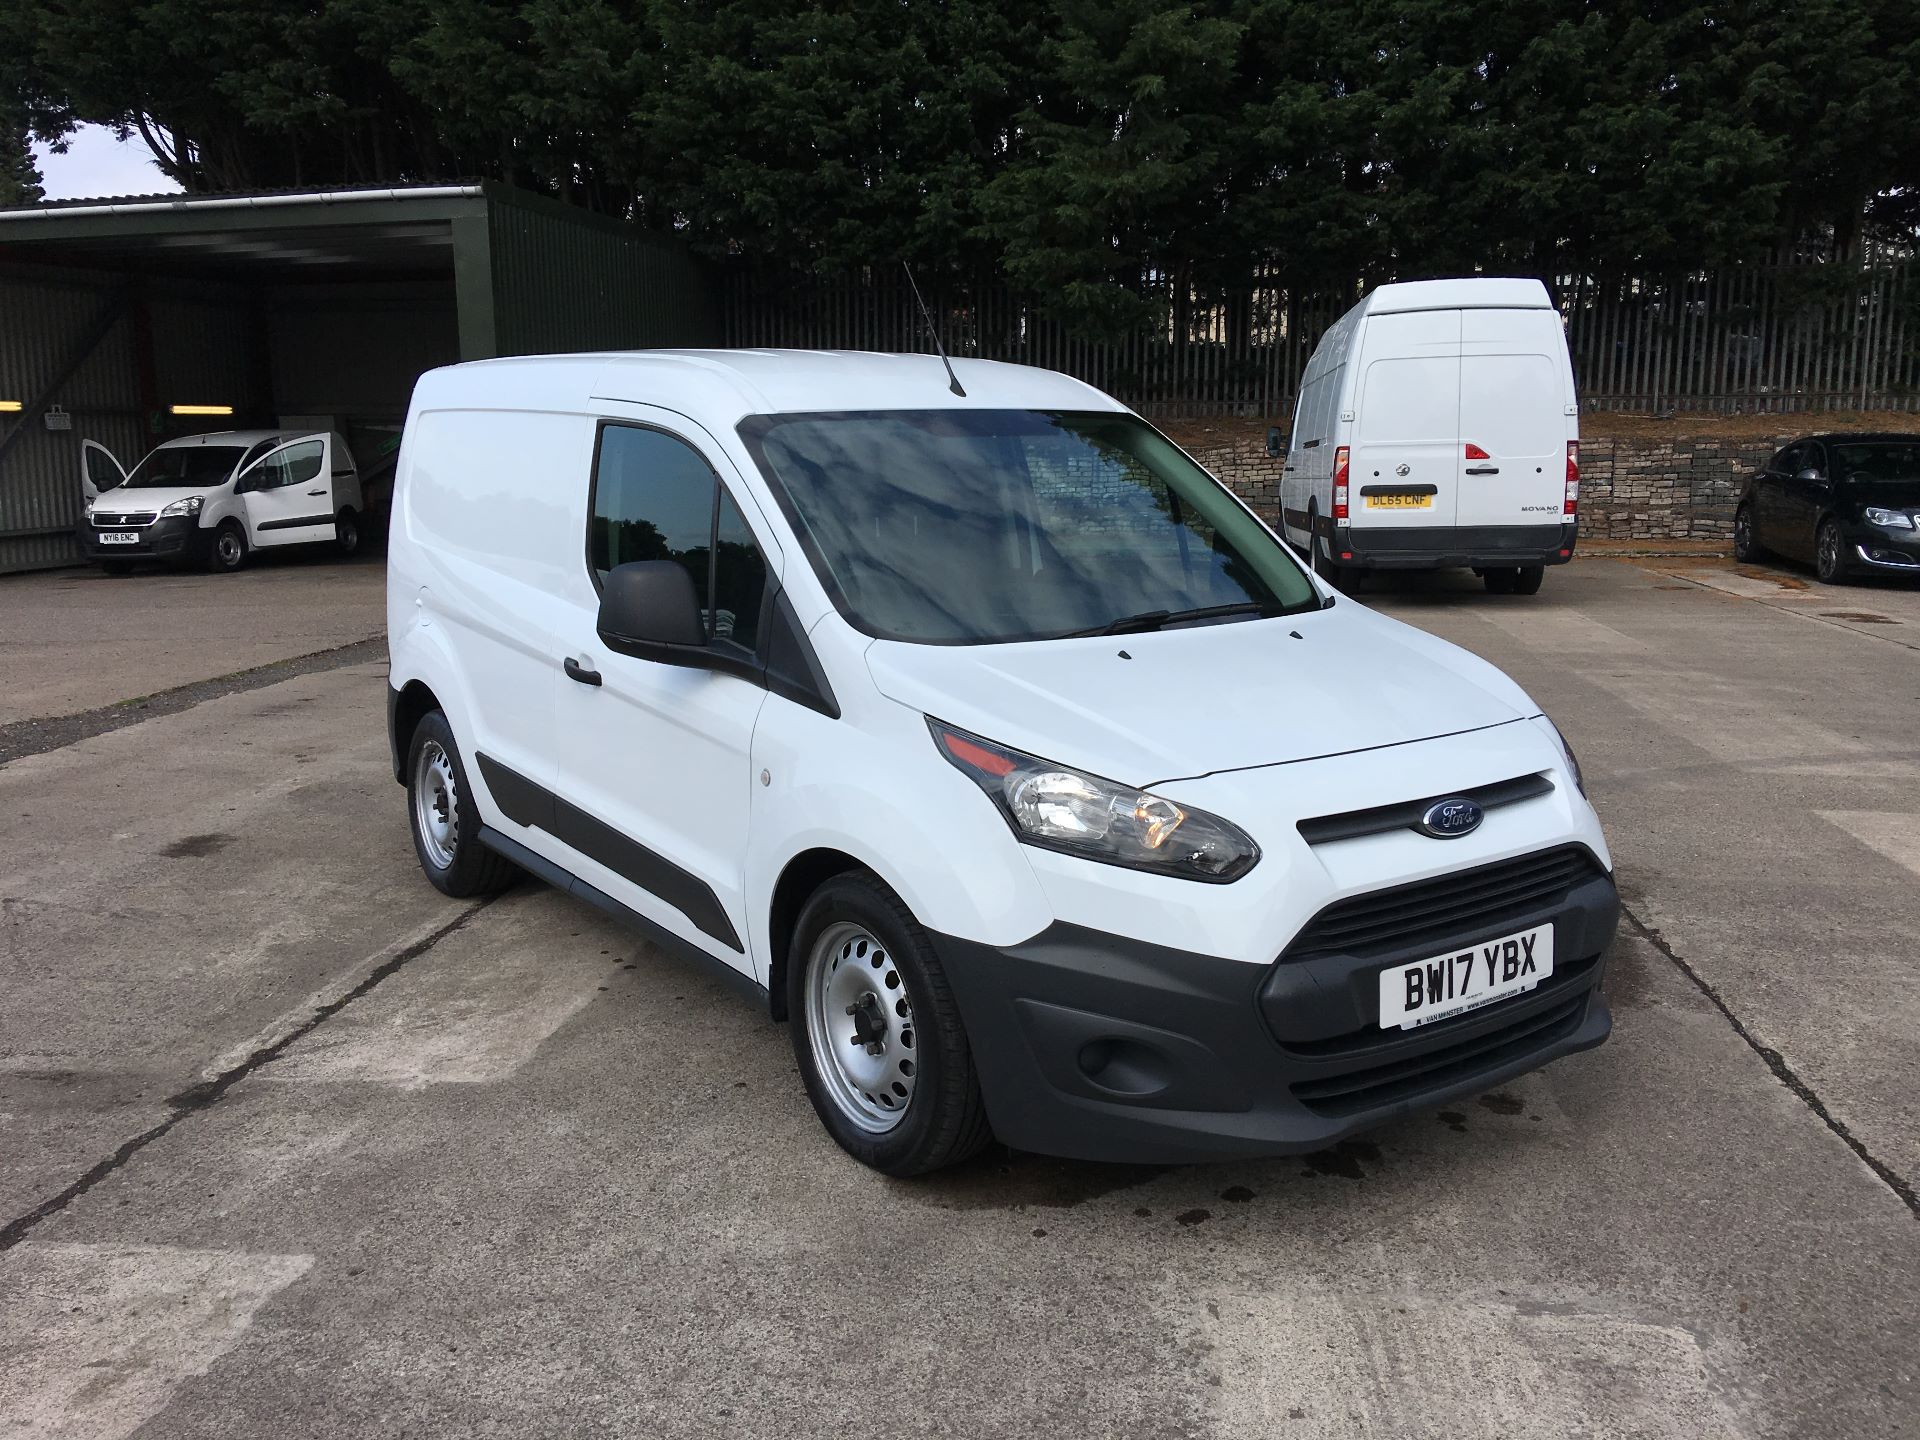 2017 Ford Transit Connect 200 L1 DIESEL 1.5 TDCI 75PS VAN EURO 5 (BW17YBX)